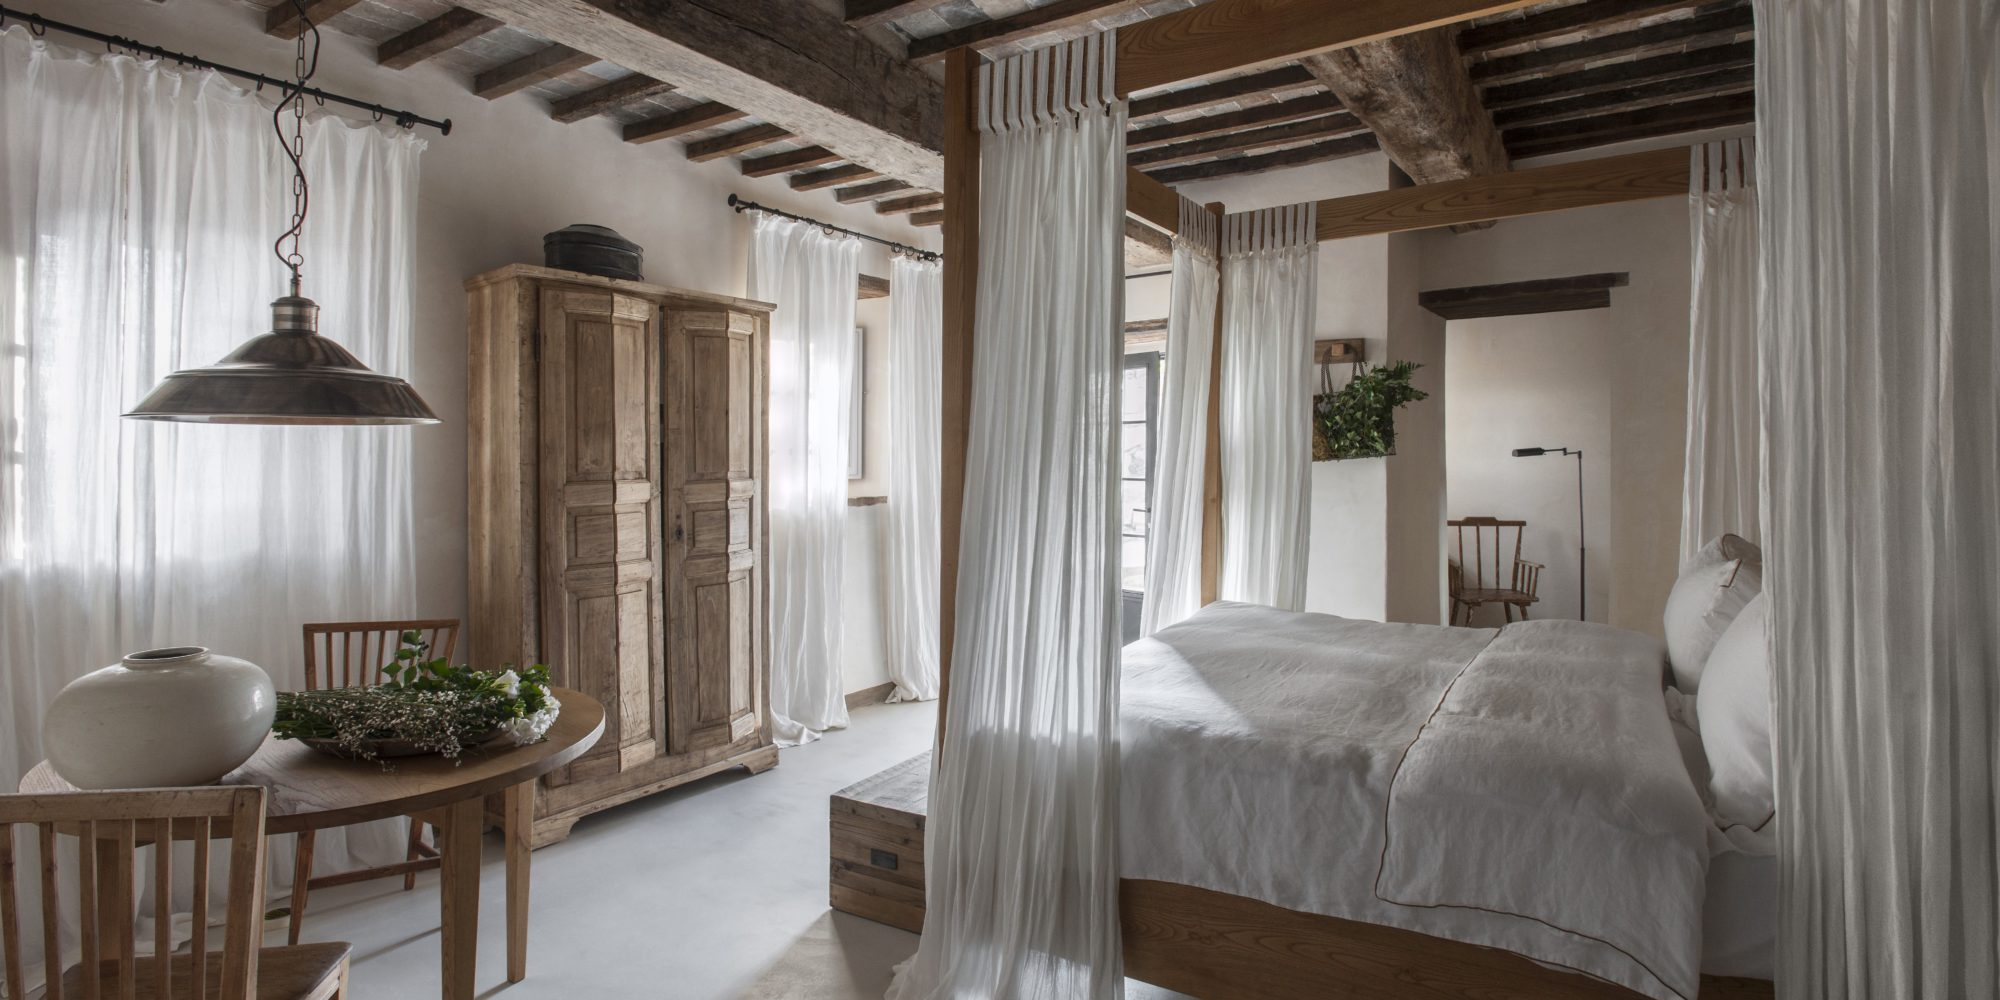 Architect Ilaria Miani worked side by side with Monteverdi Tuscany owner, Michael L. Cioffi, during the restoration of the village of Castiglioncello del Trinoro. Much of her design inspiration came from the Val d'Orcia area's rolling hills, dusty roads, and forests of oaks.